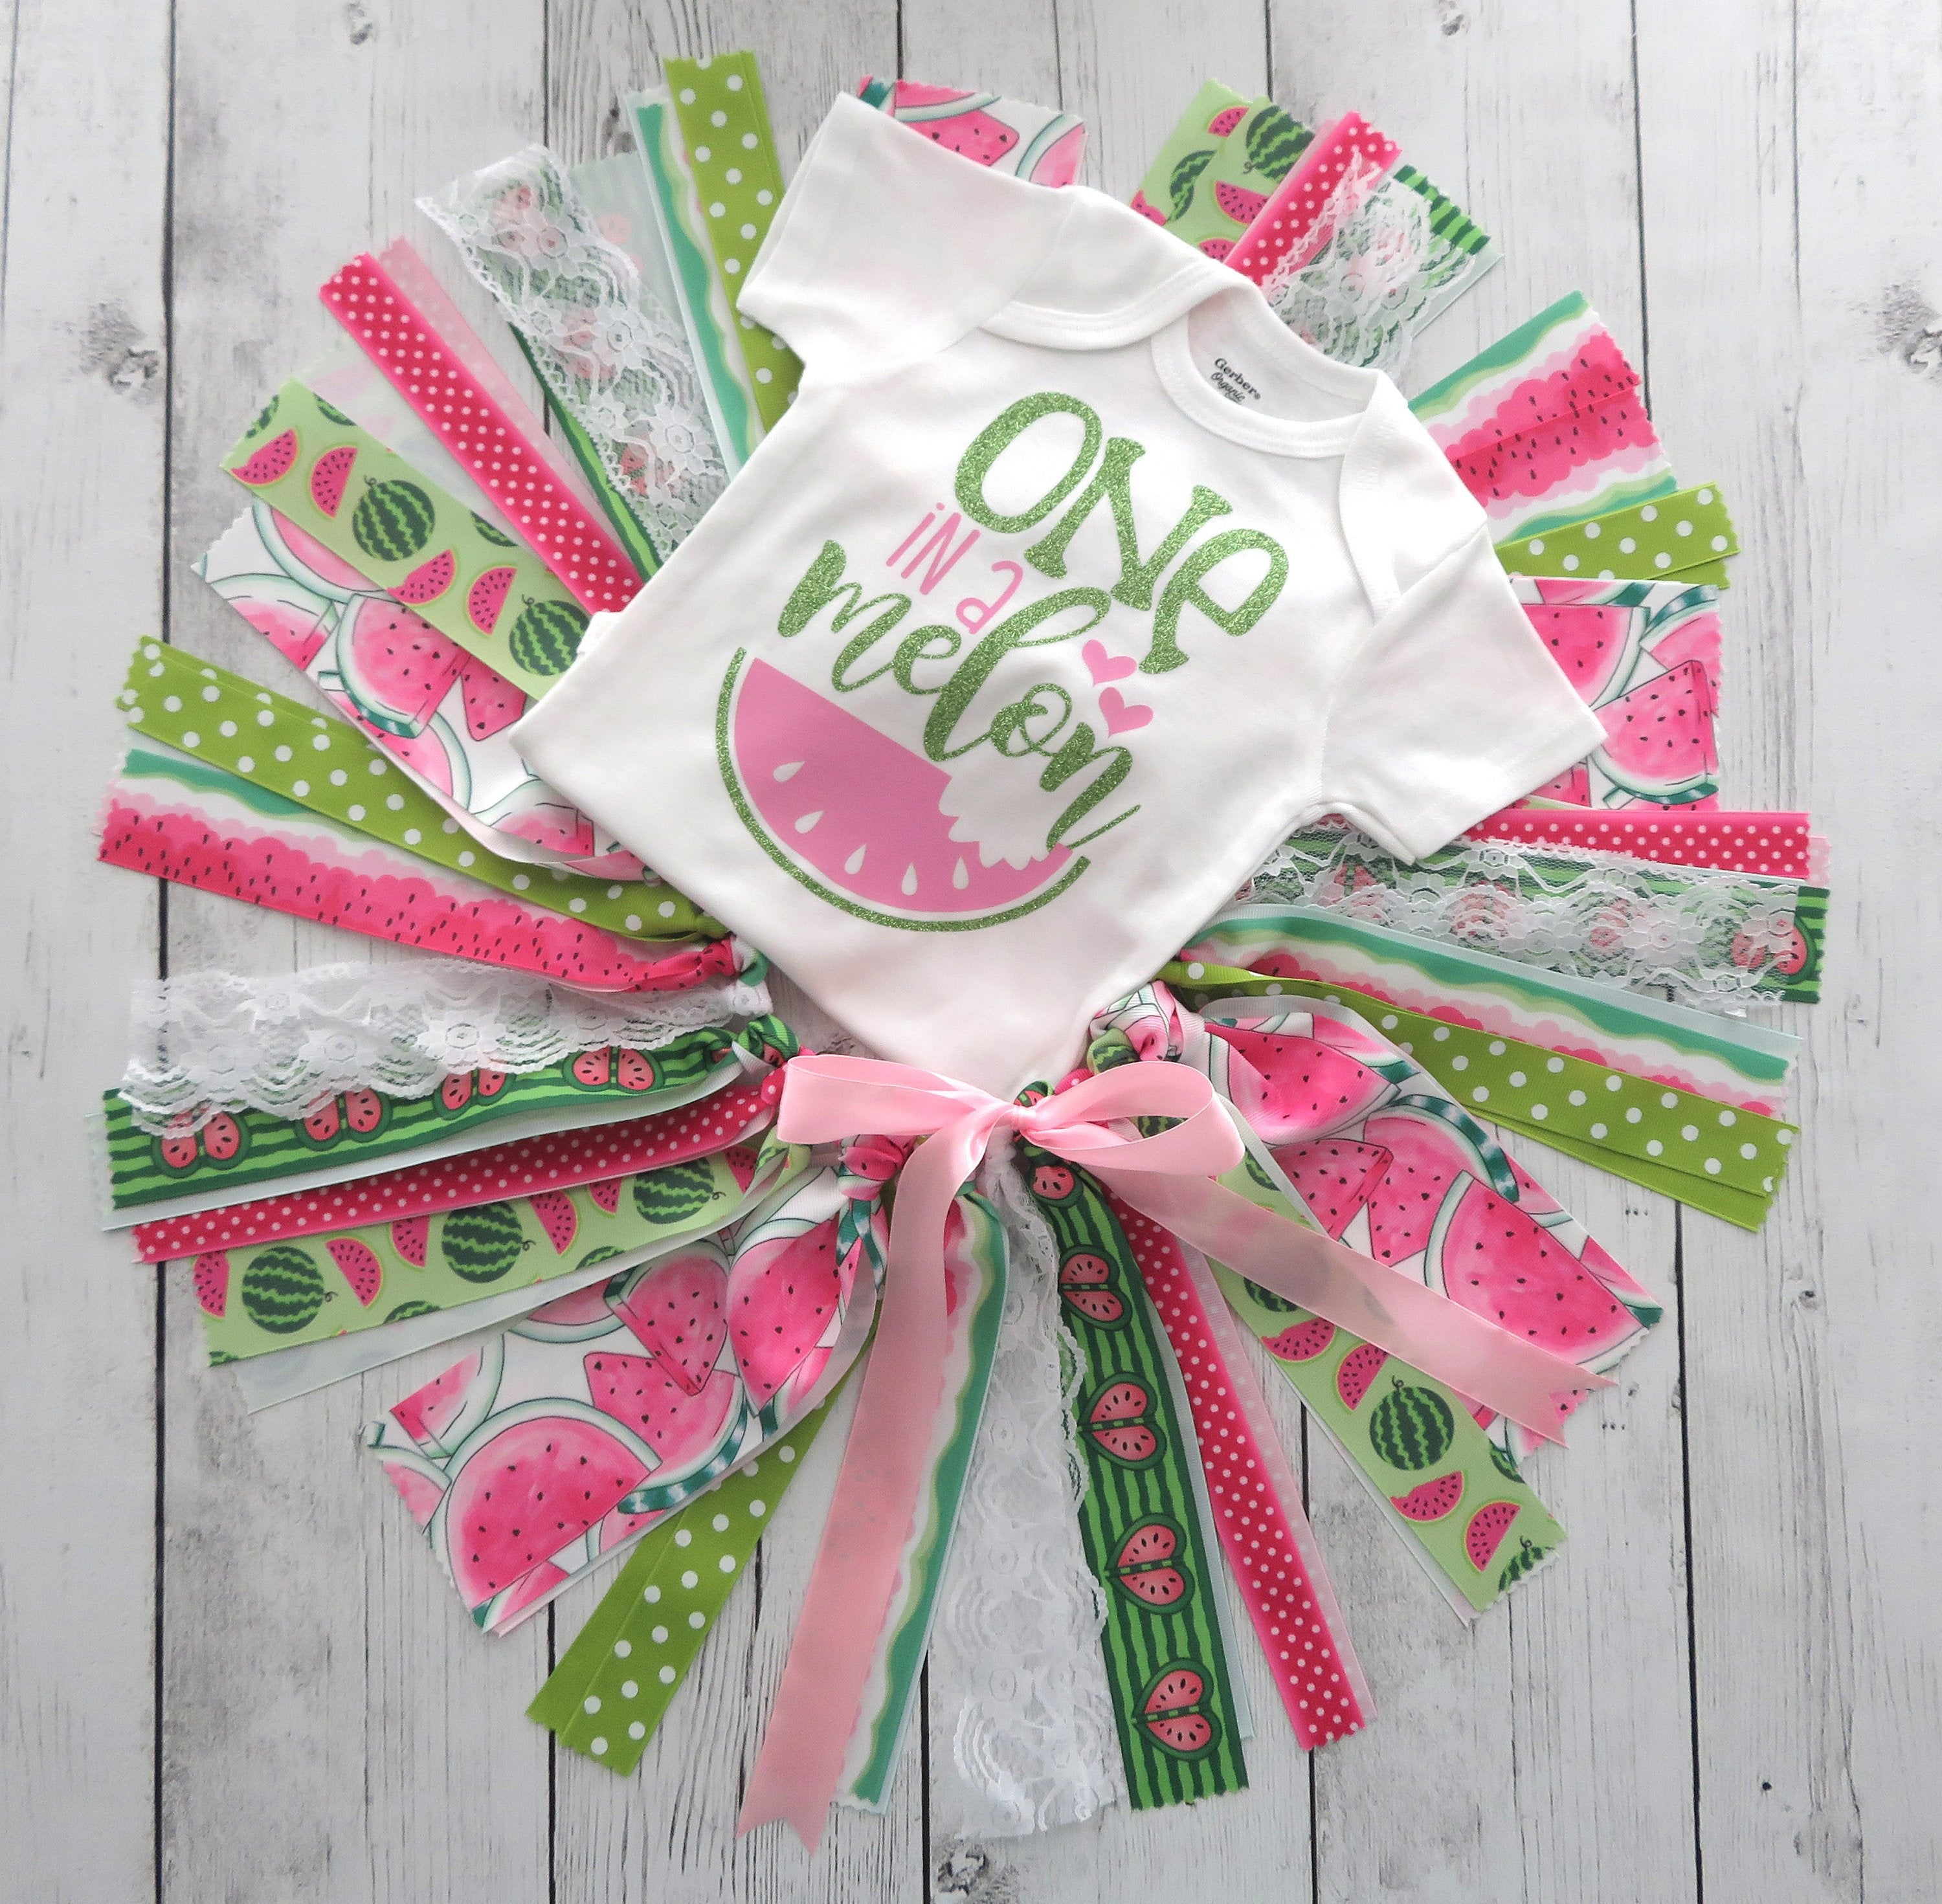 One in a Melon First Birthday Outfit with Tutu, Headband and Shoes in pink and lime - watermelon first birthday outfit, summer 1st birthday